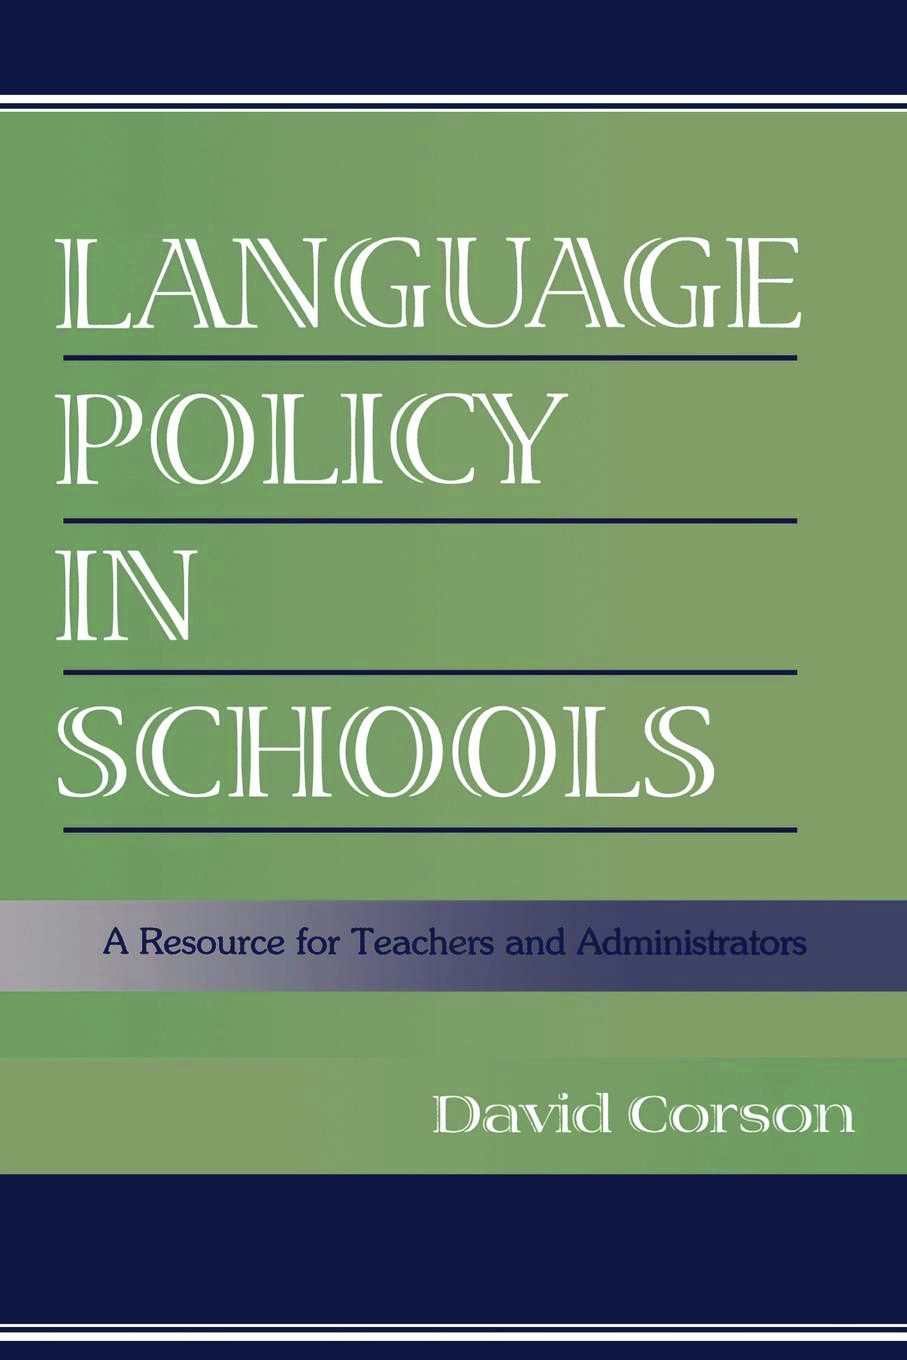 Language Policy in Schools